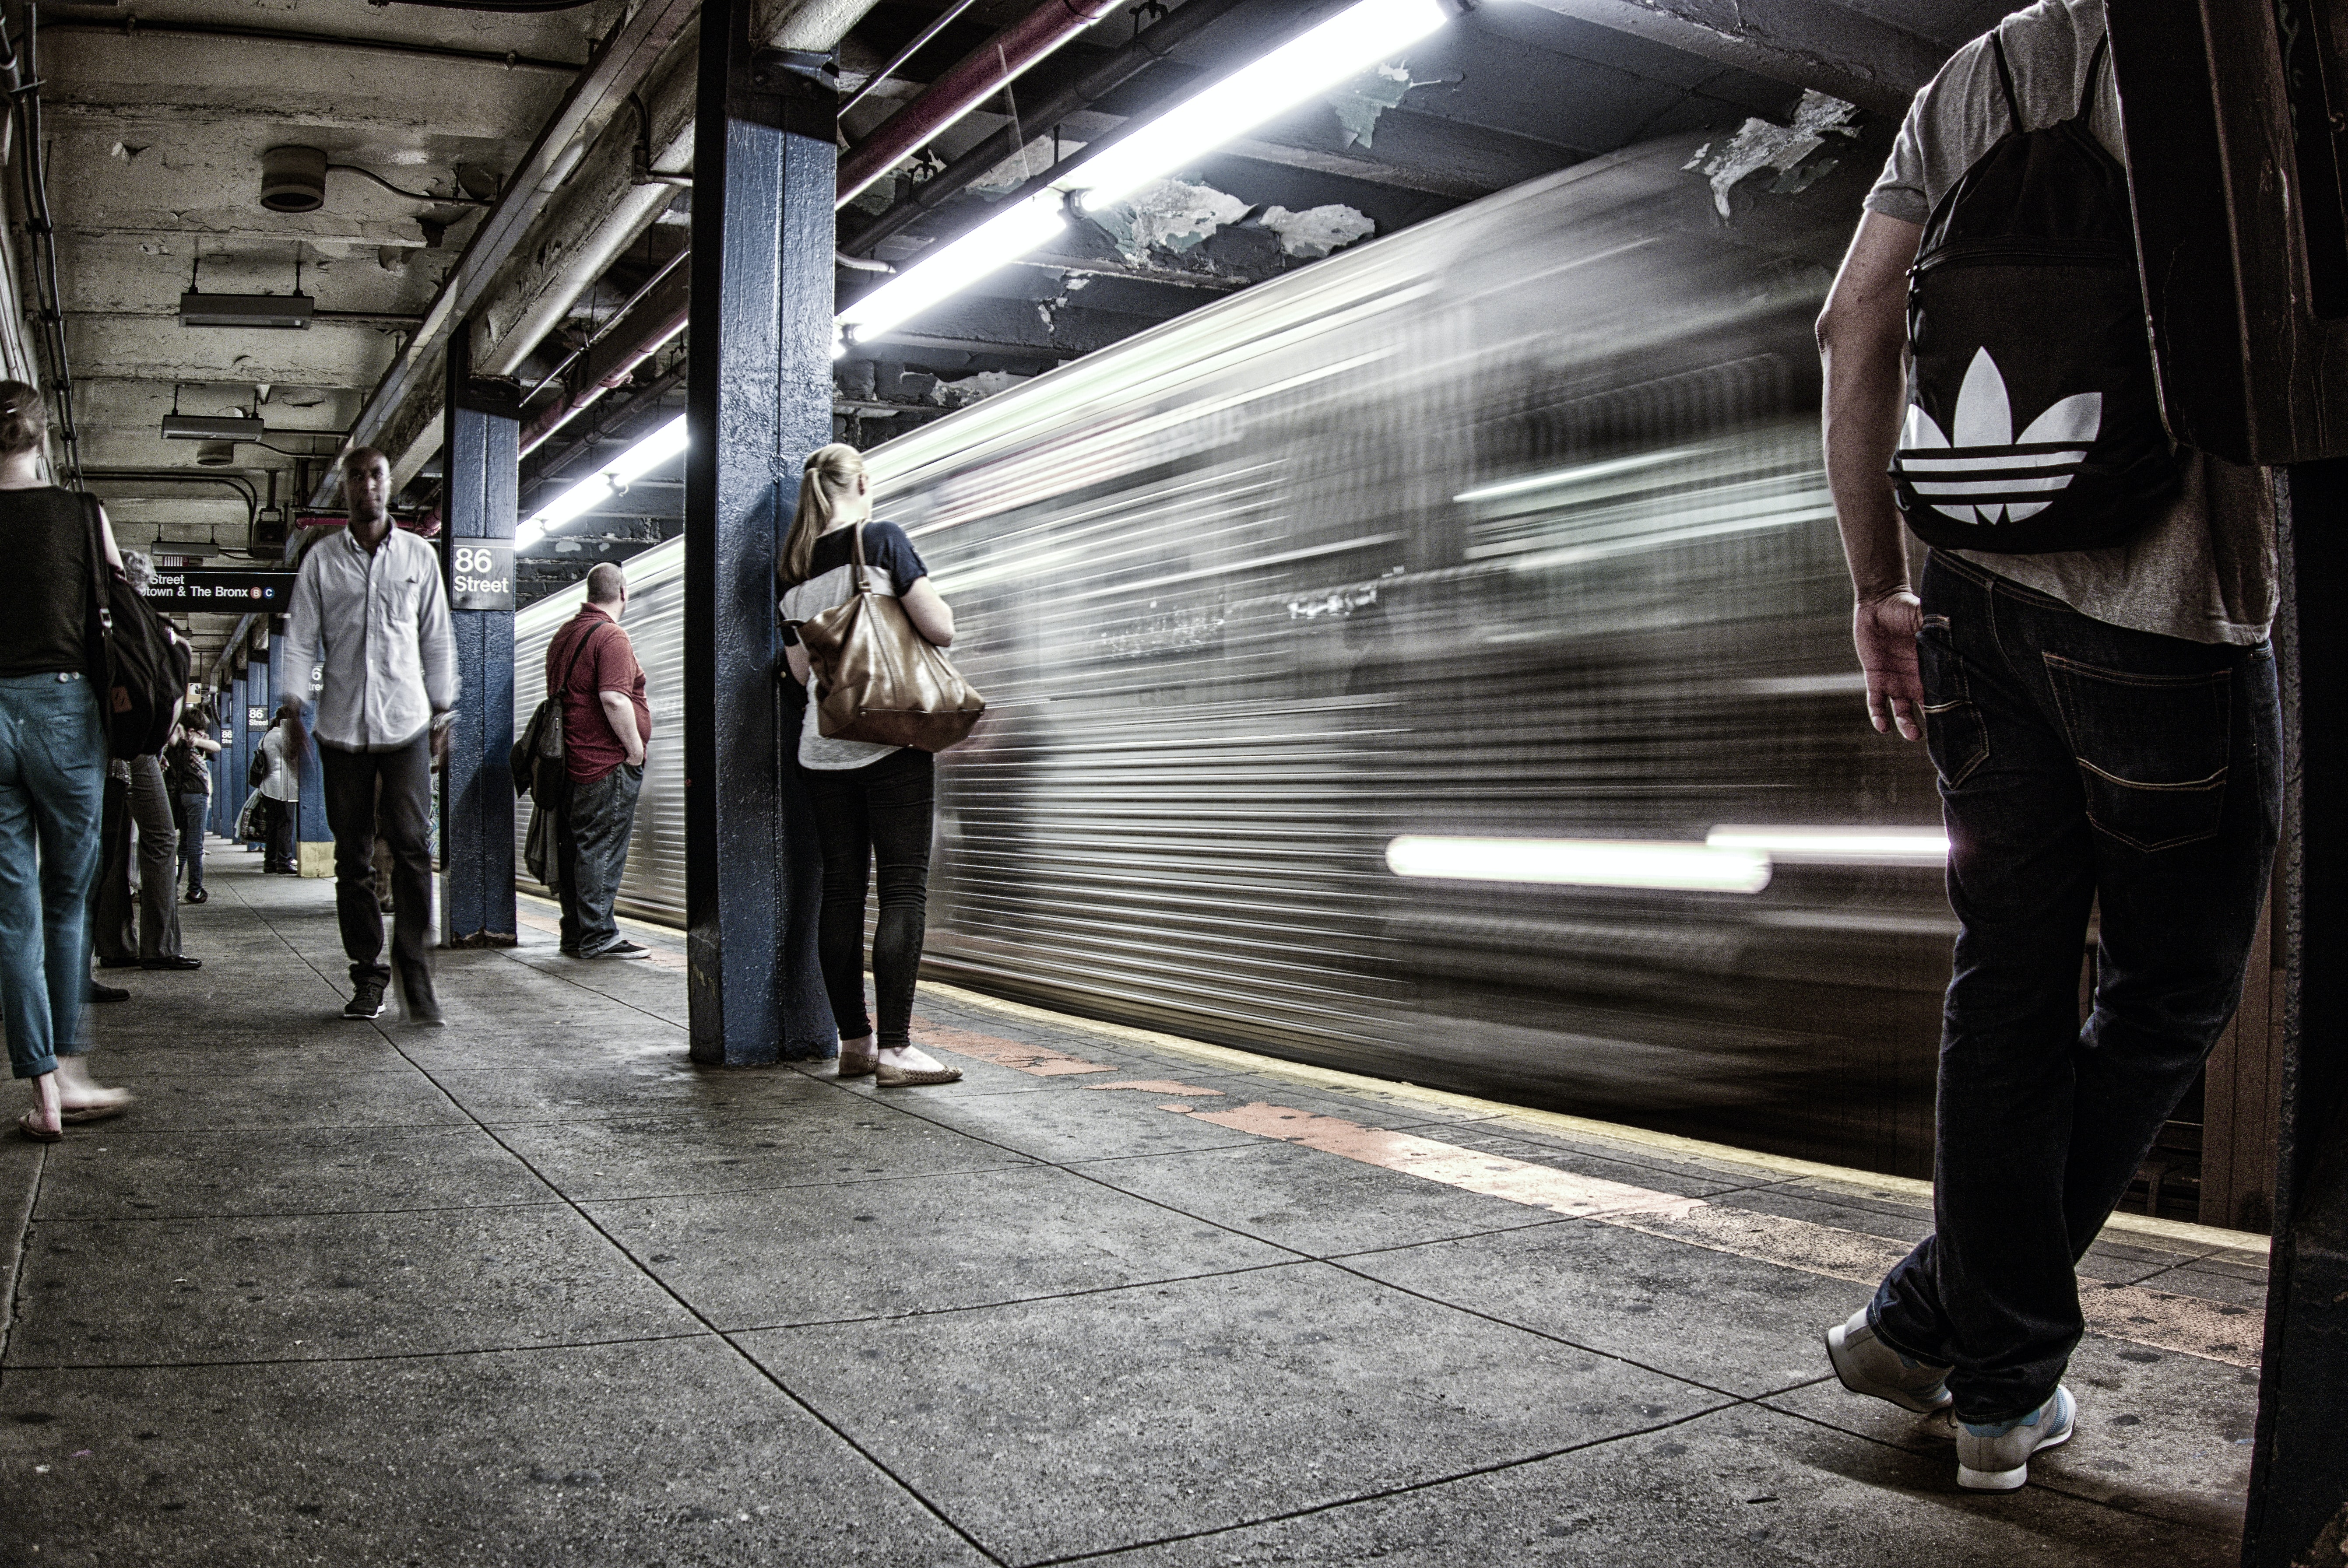 People waiting for a subway train at the 86th Street station in New York